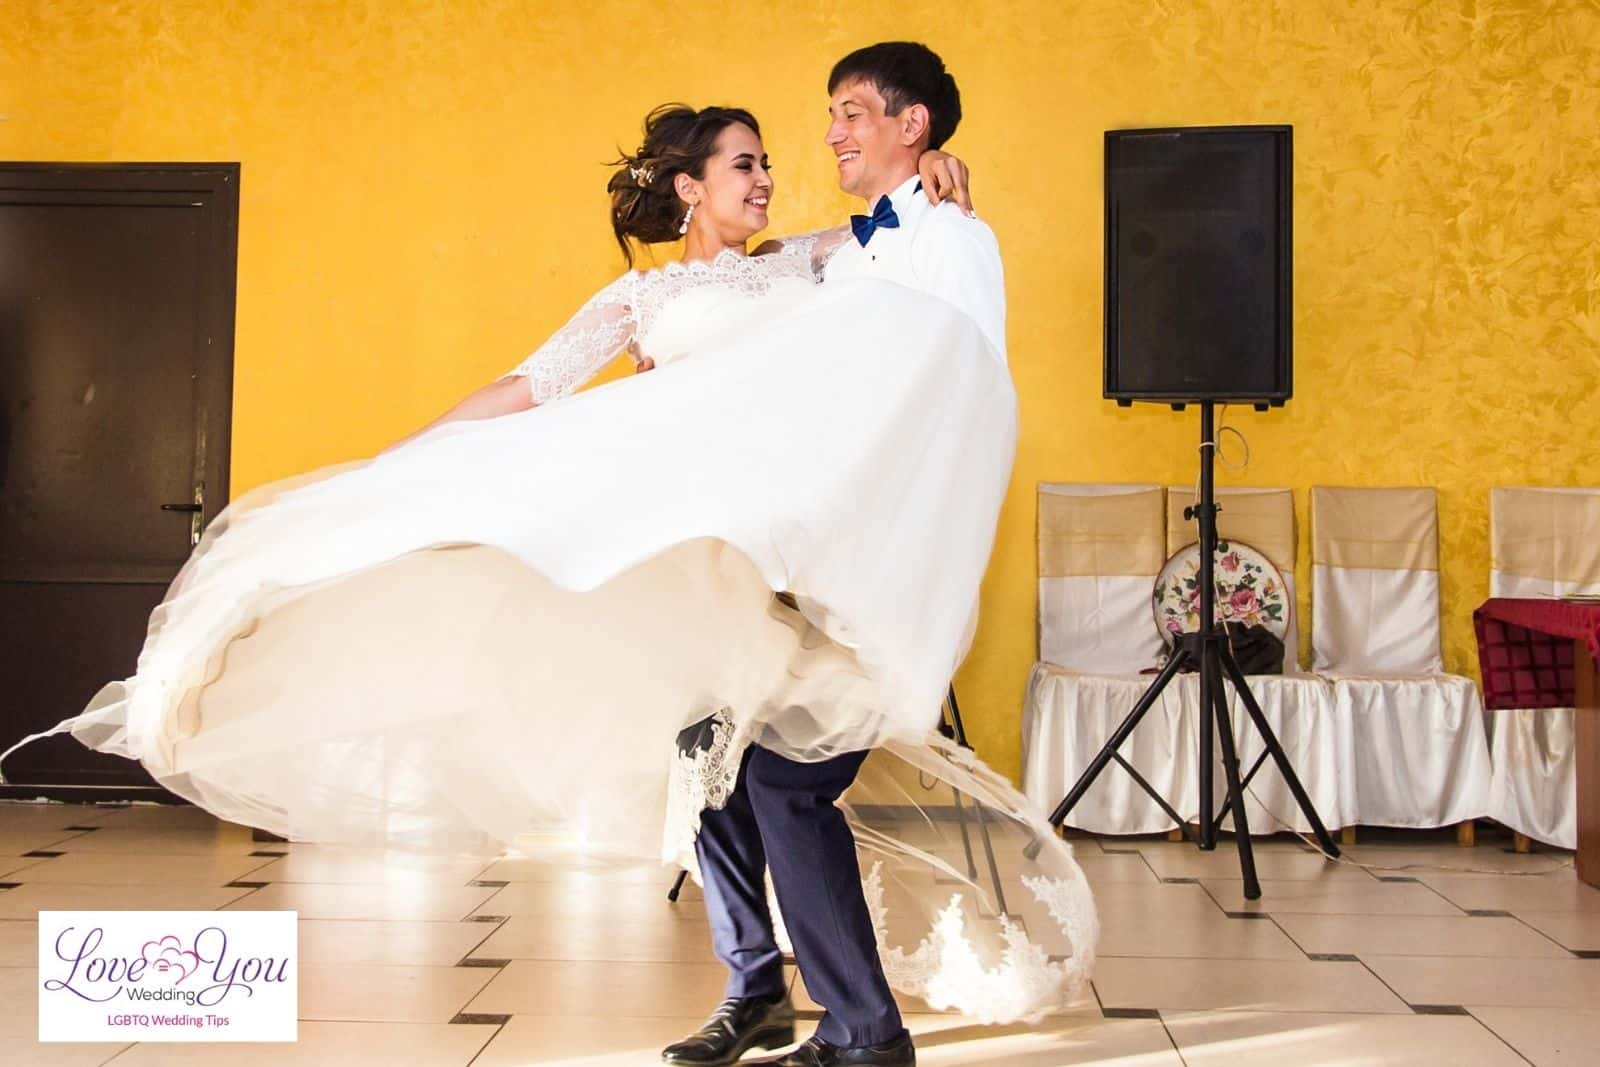 groom carrying the bride while dancing